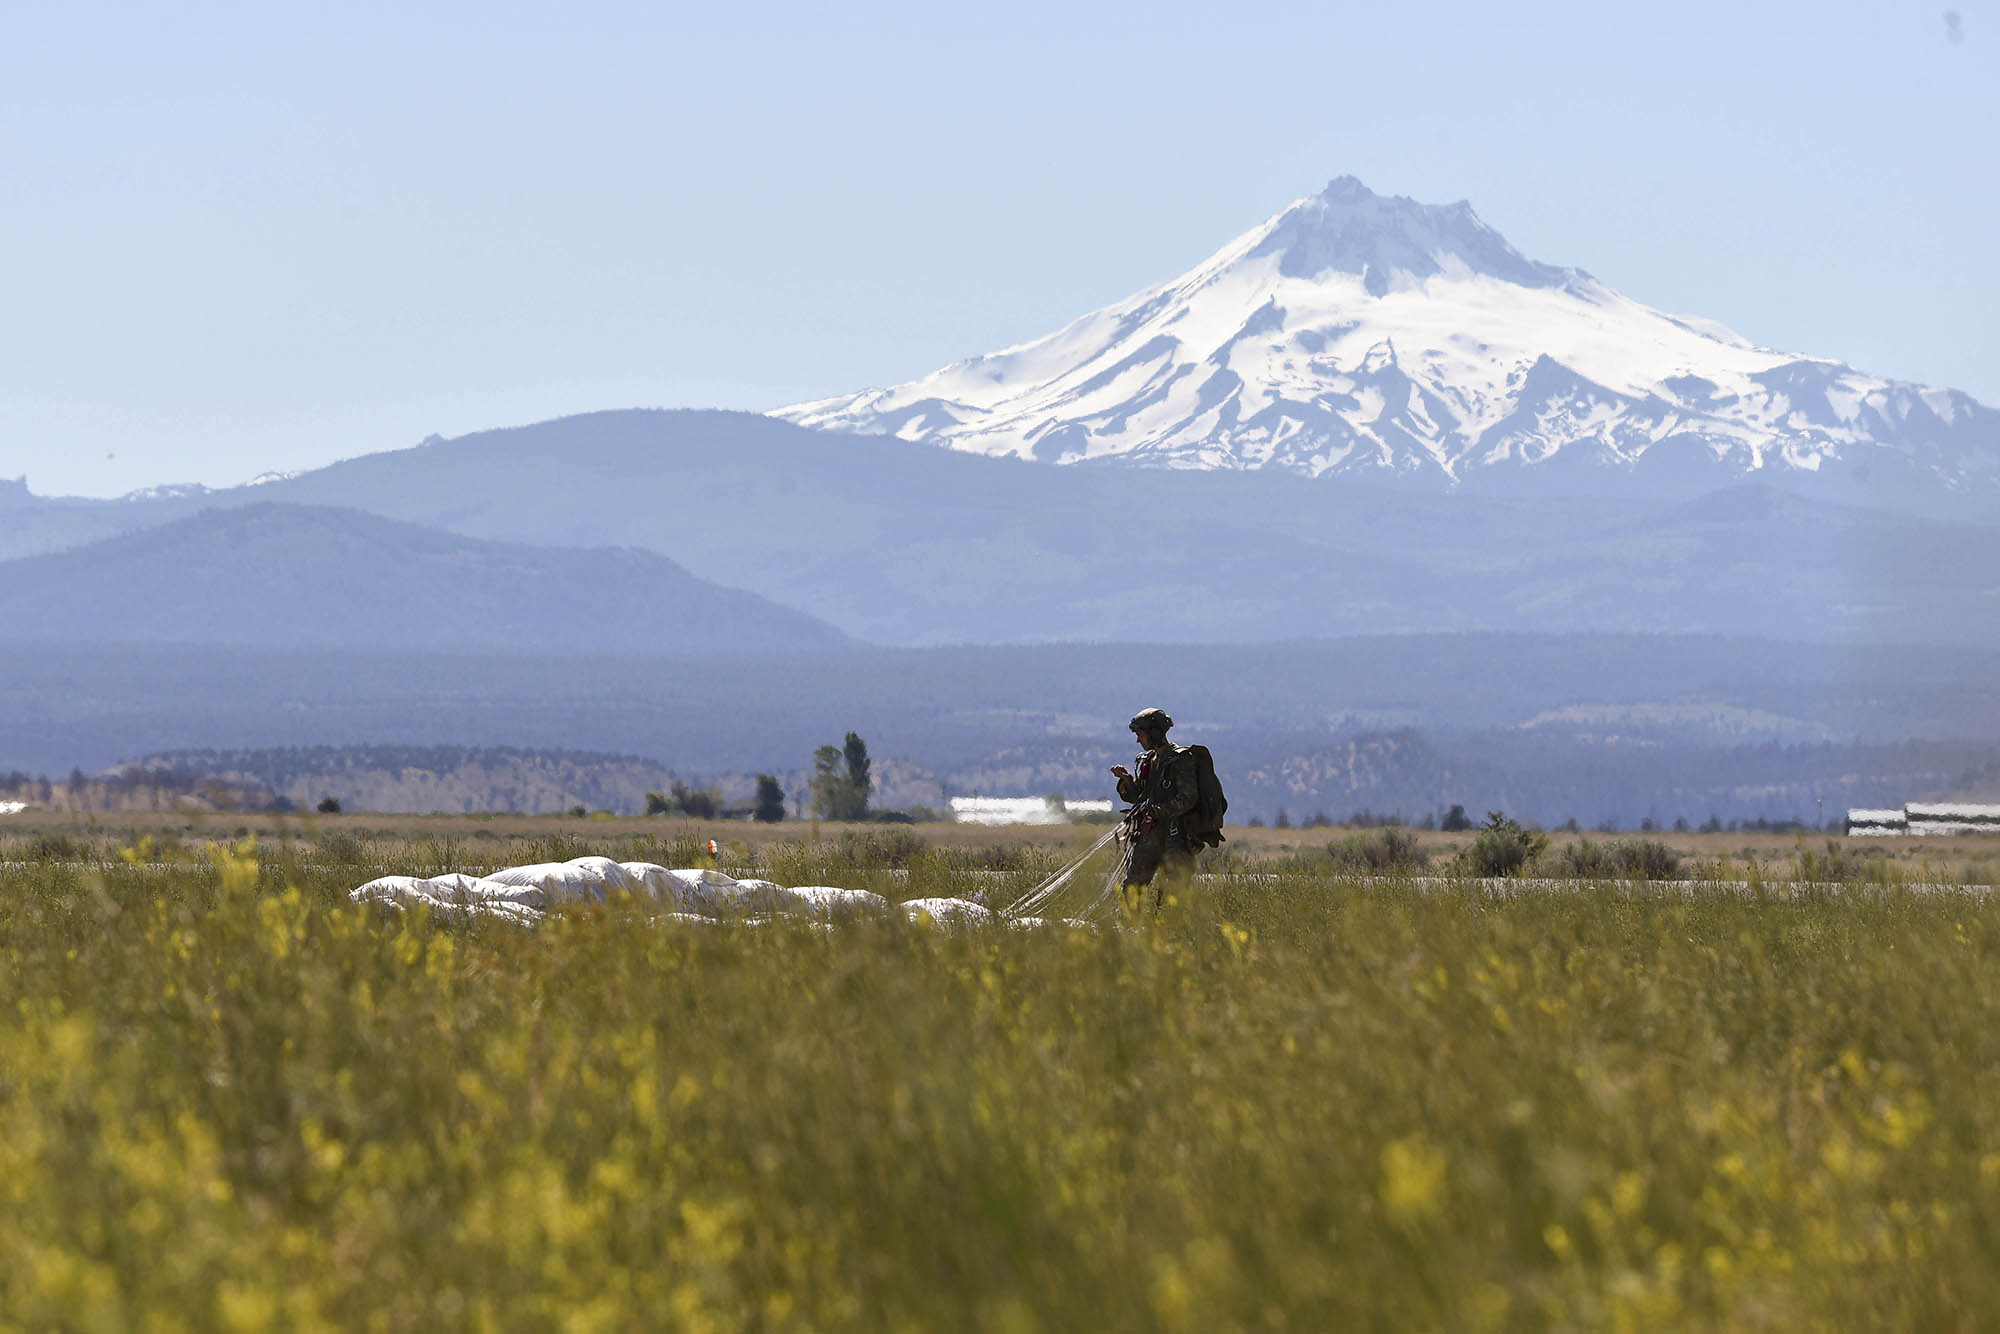 An Air Force Special Tactics Squadron practices high altitude, low opening (HALO) jumps and double-bag static line (DBSL) training June 22, 2020, at the Madras Municipal Airport, Ore. (Tech. Sgt. Emily Moon/Air Force)